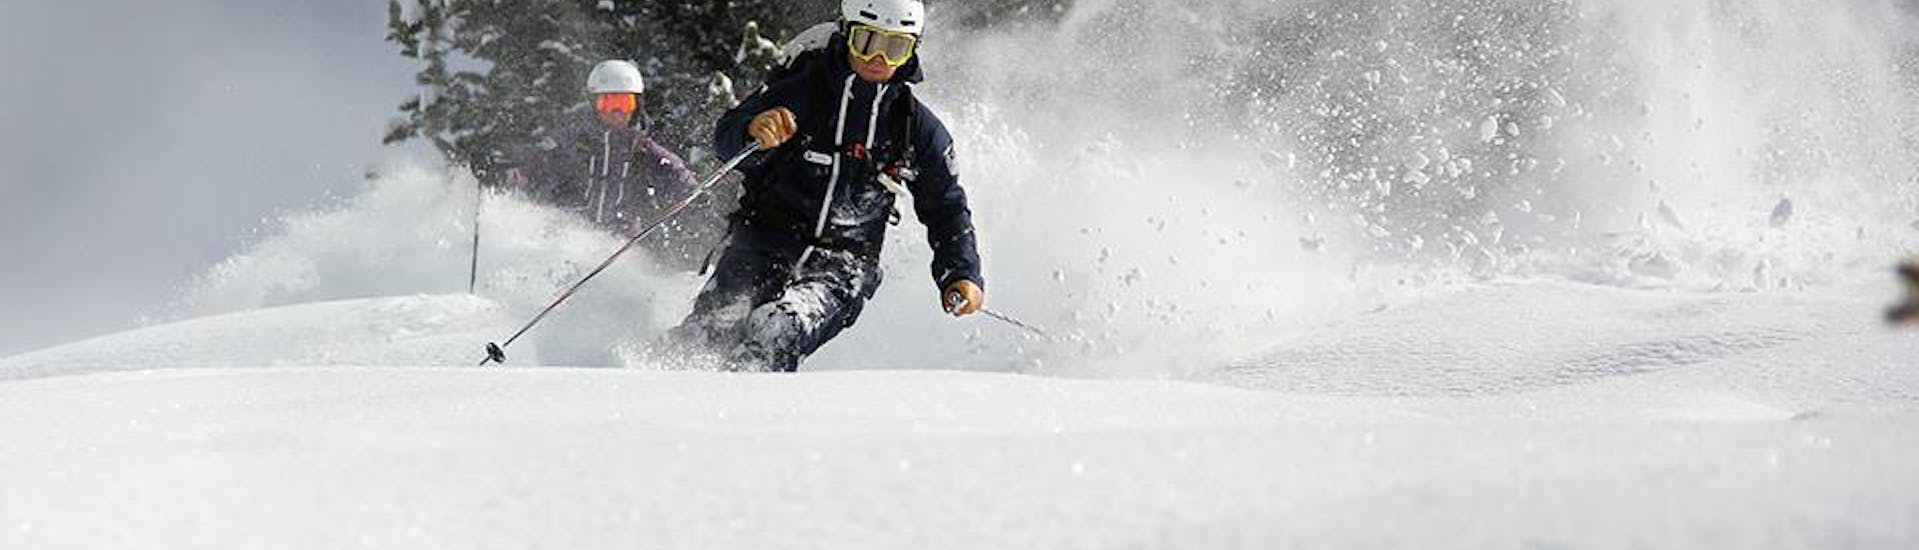 Ski Lessons Kids (11-17 years) - All Start Times - Advanced with European Snowsport Verbier - Hero image